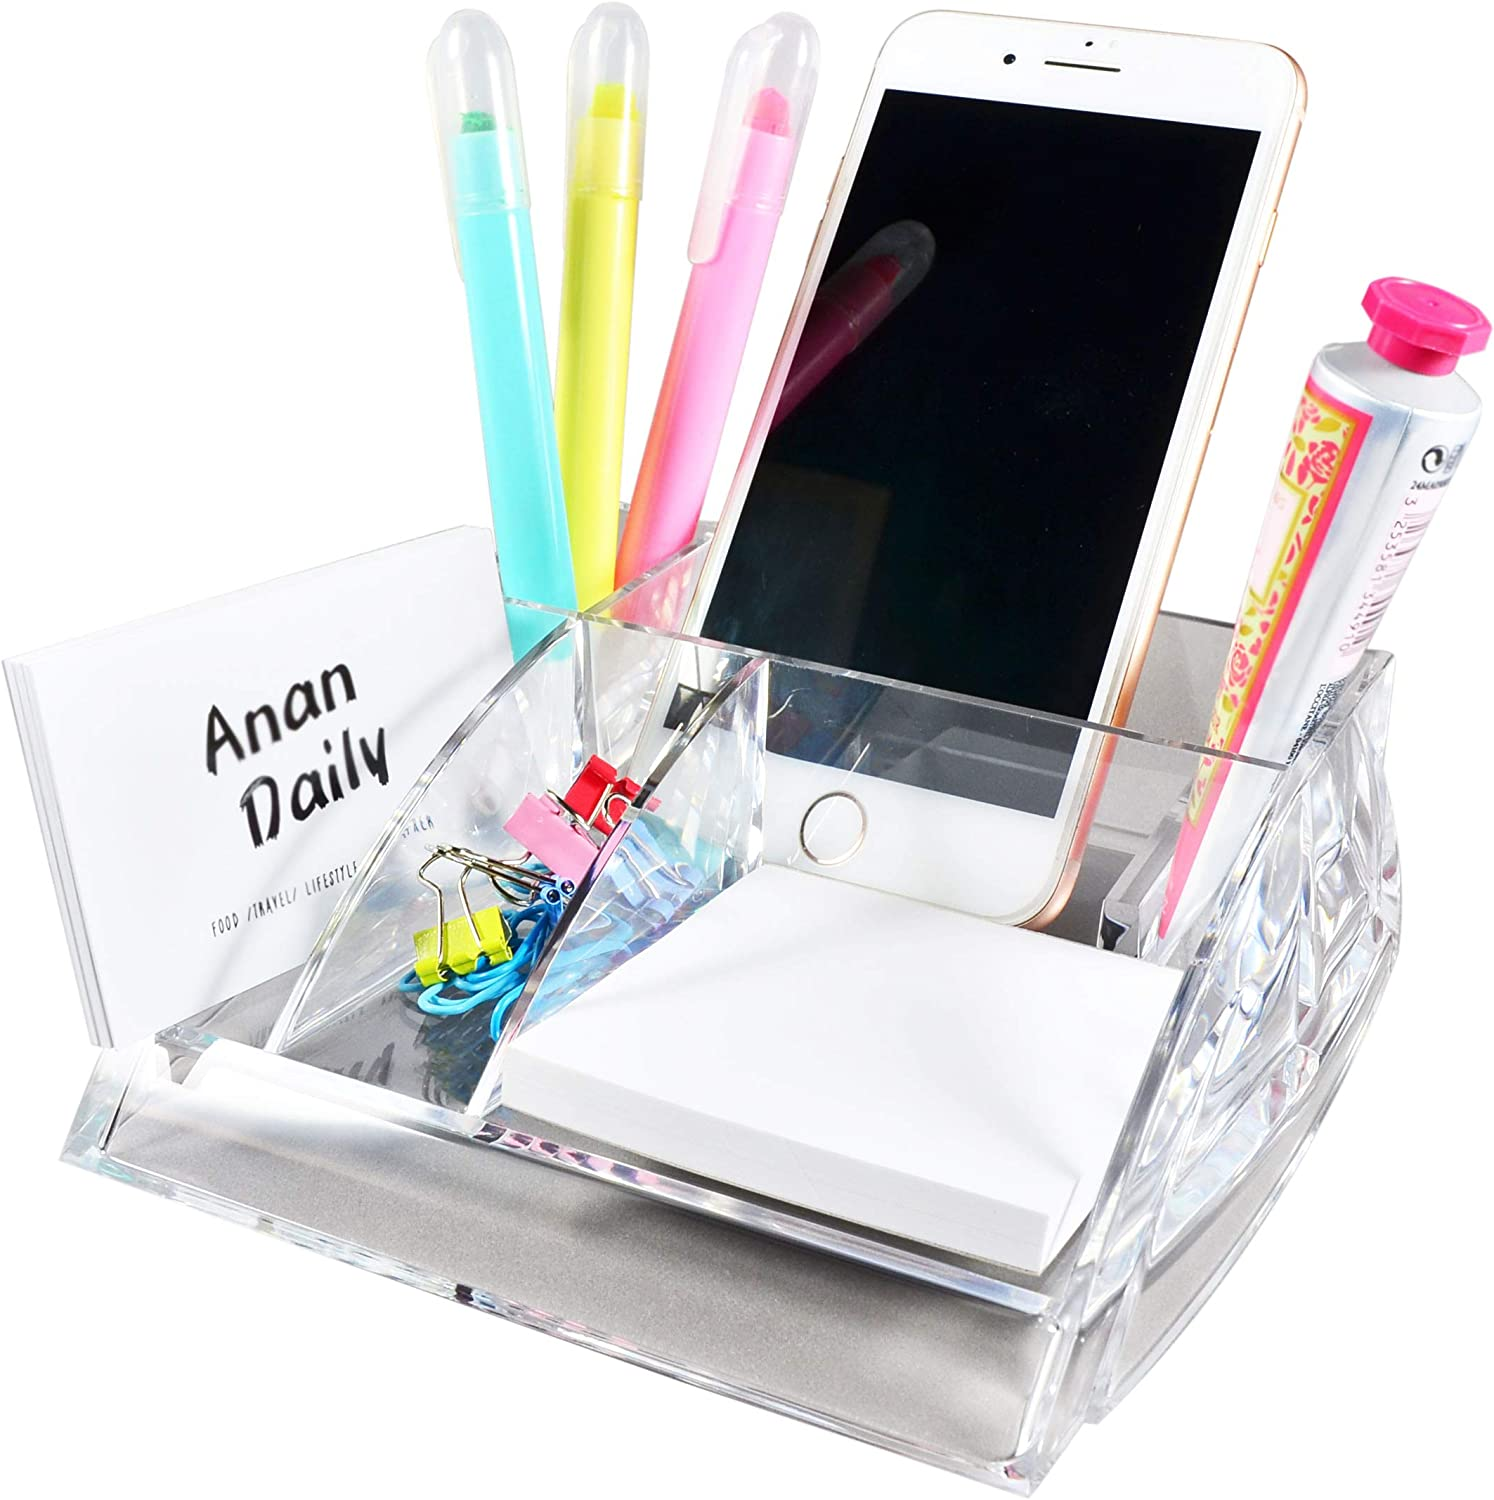 COM.TOP - Acrylic Desktop Supplies Organizer (Memo Note and Paper Clips Included) for 3 x 3 Memo, Clip Holder, Phone Holder, Business Card Holder | Office Supplies, Stationery Organizer for Desk